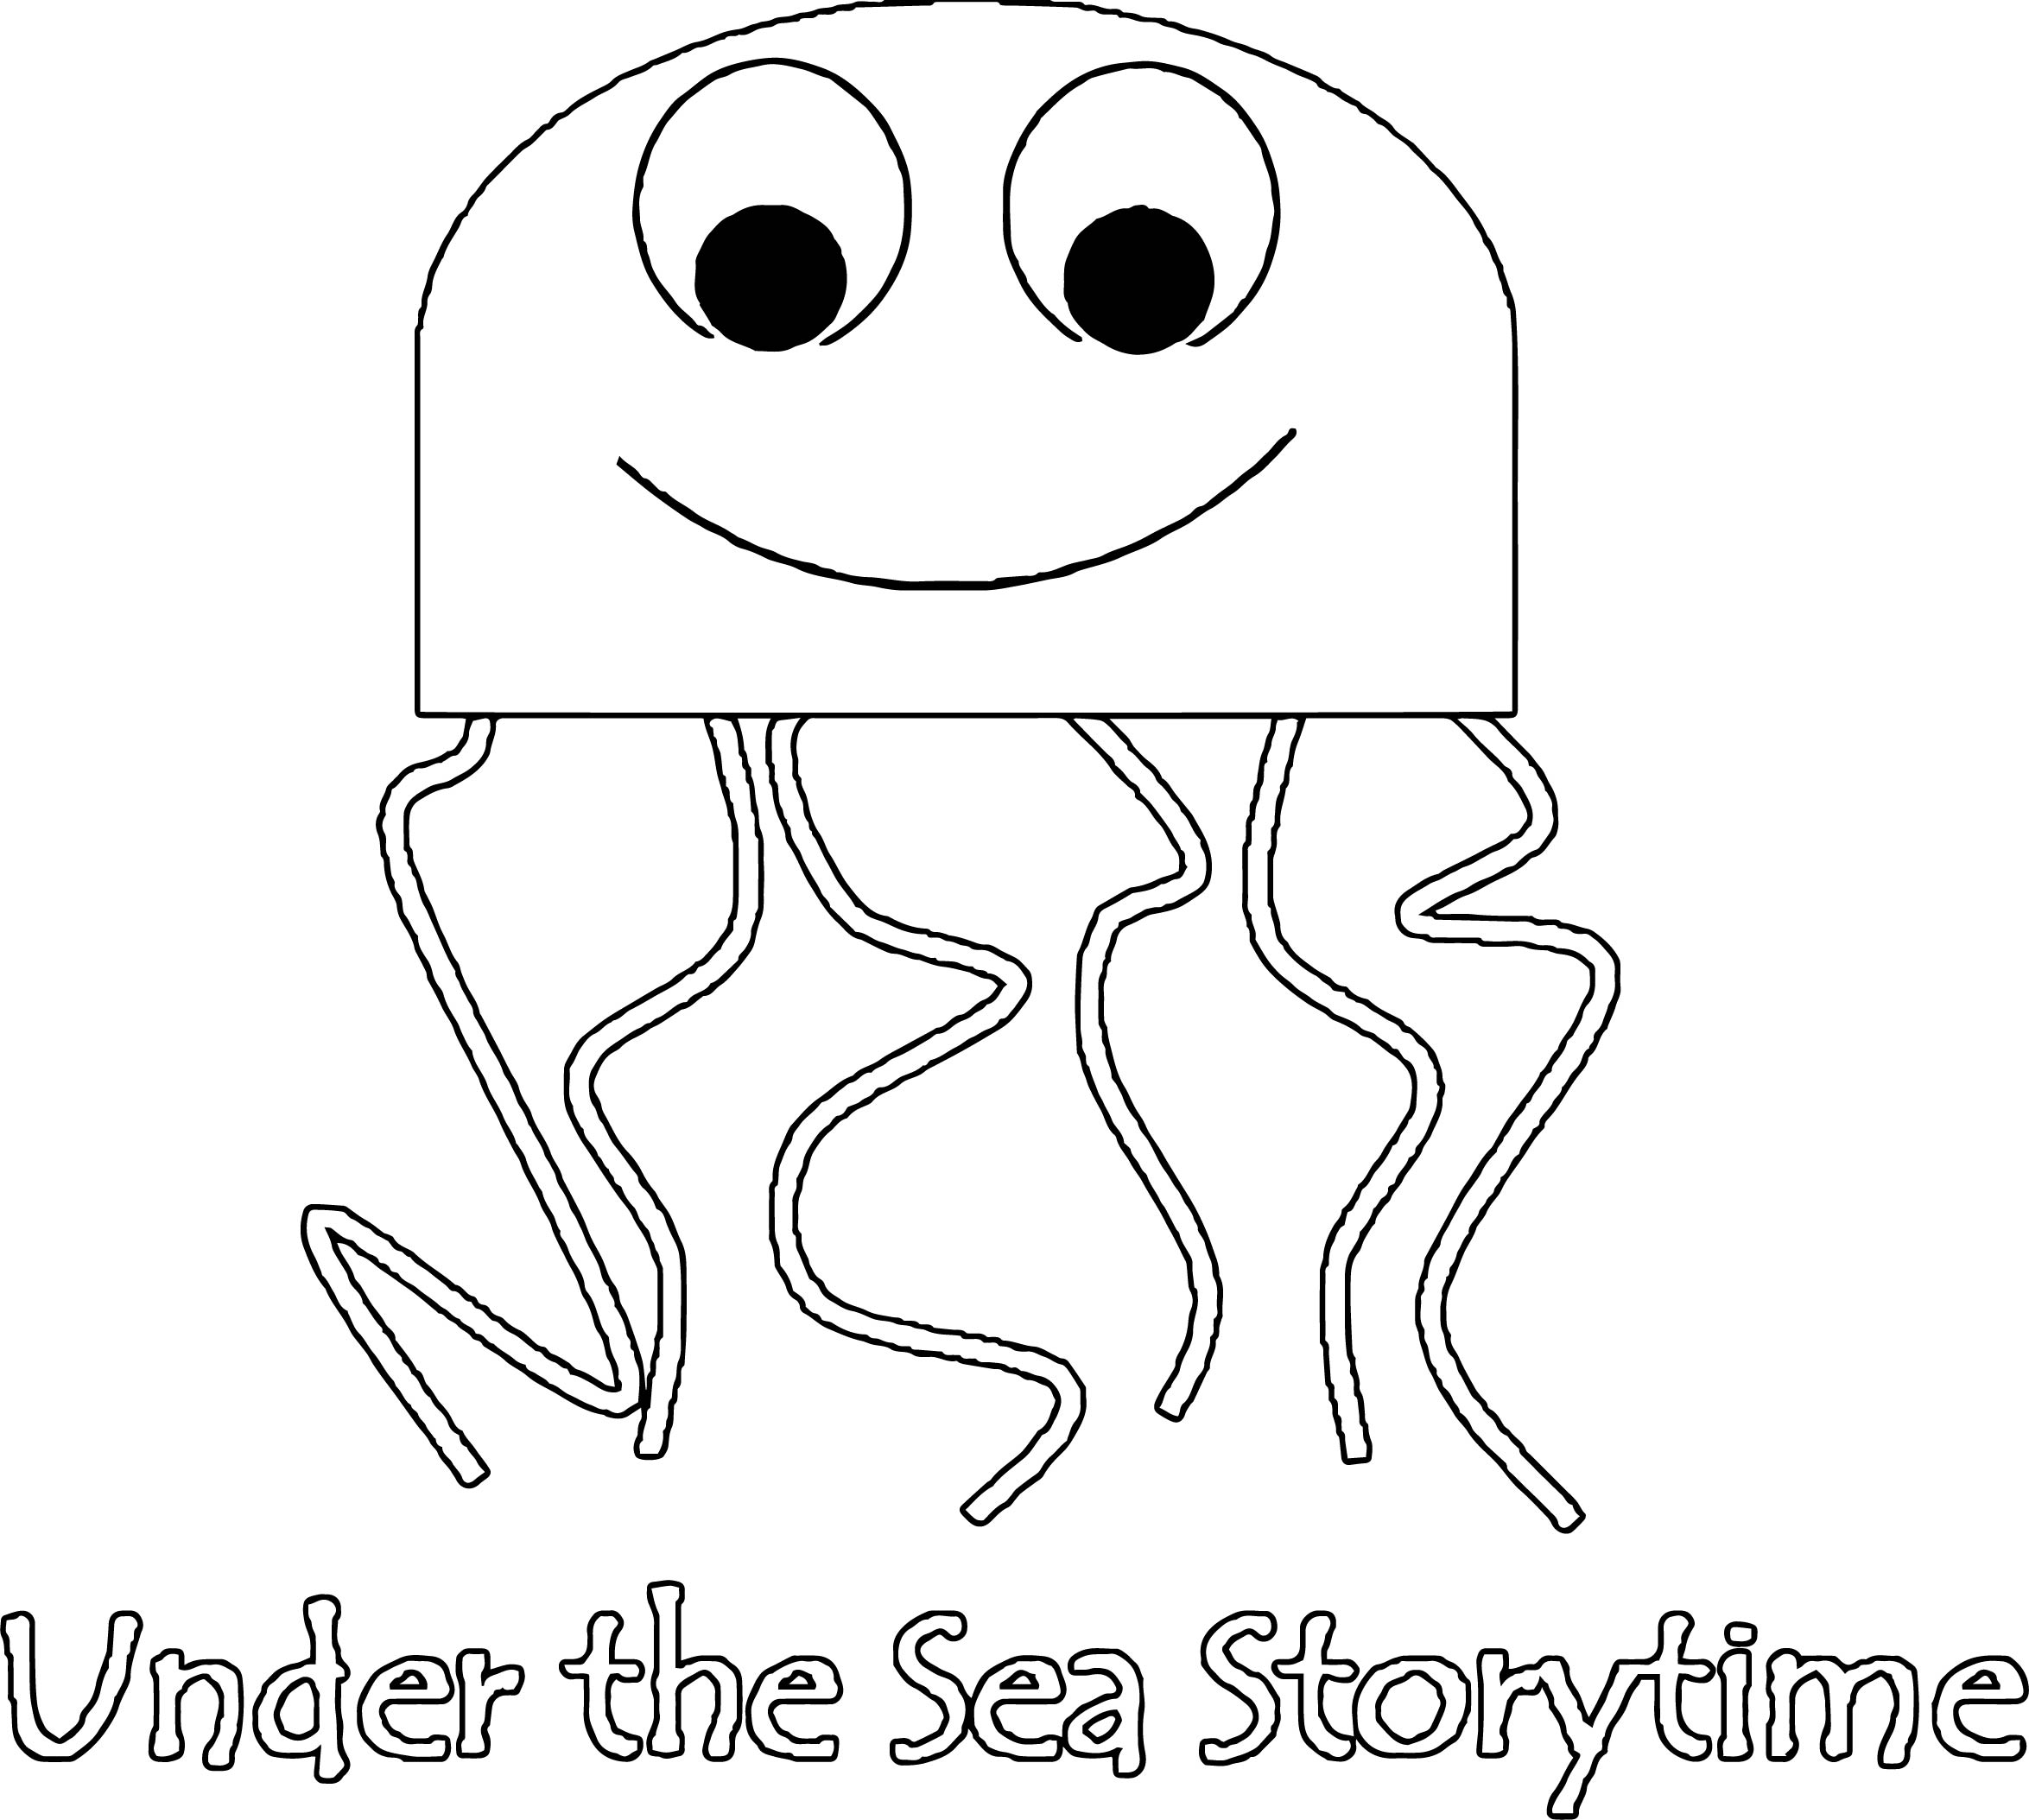 Jellyfish Under The Sea Storytime Coloring Page